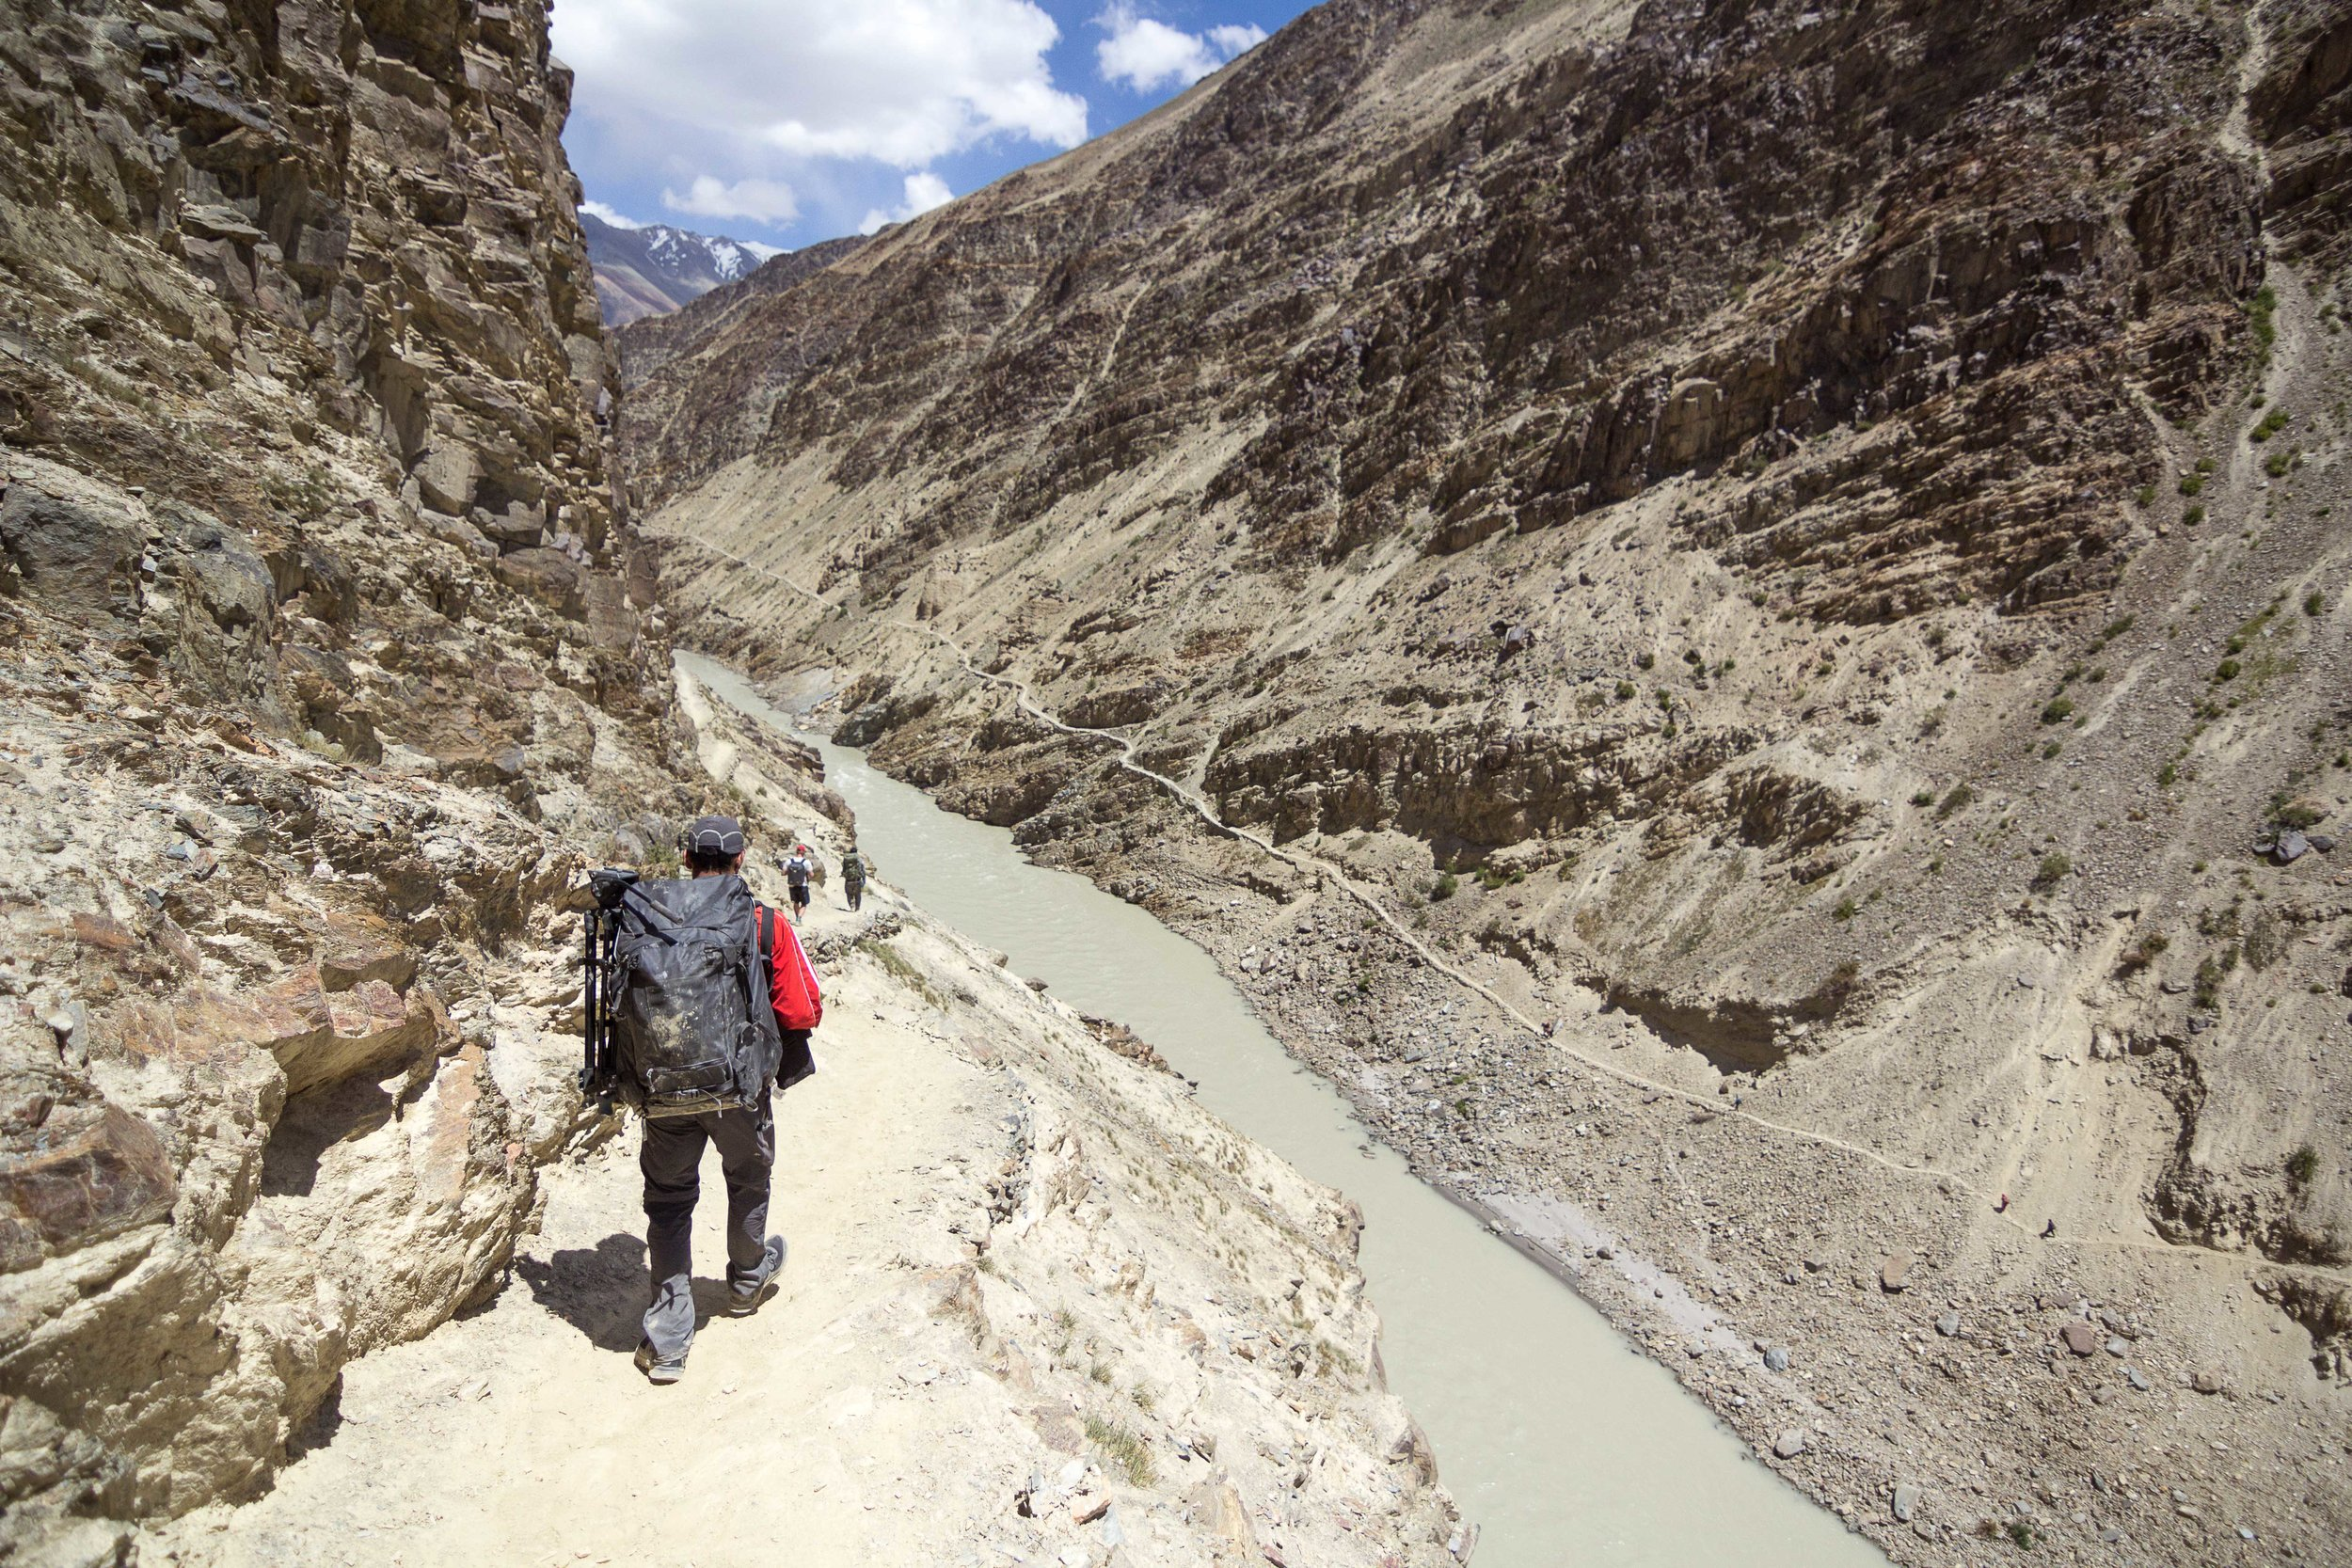 Navigating narrow ridges along the Zanskar river in Padum.